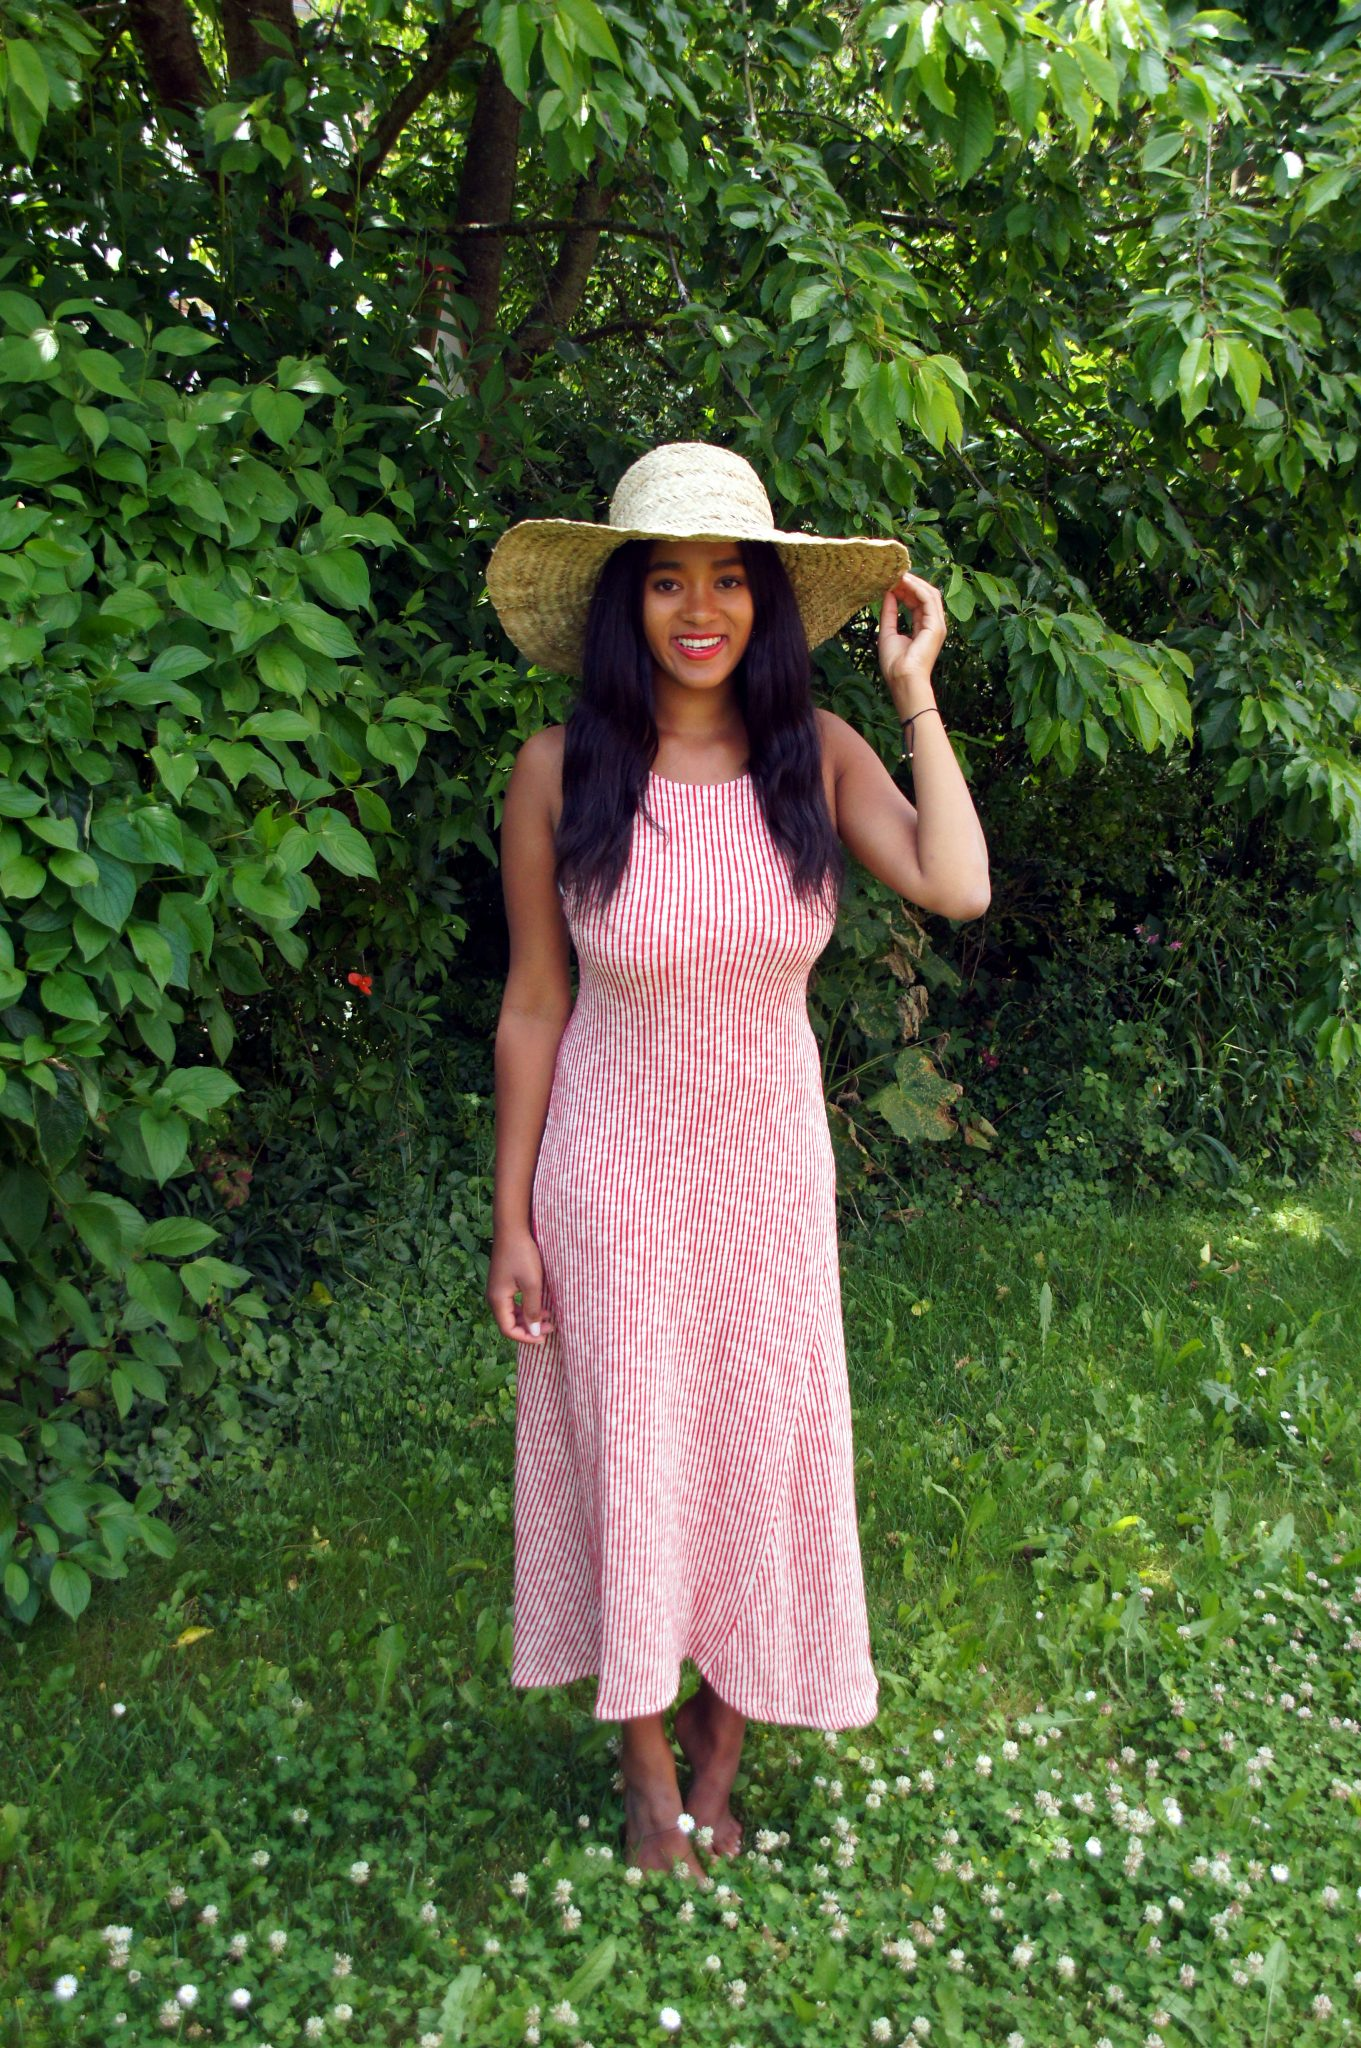 wearing a striped dress for a garden party